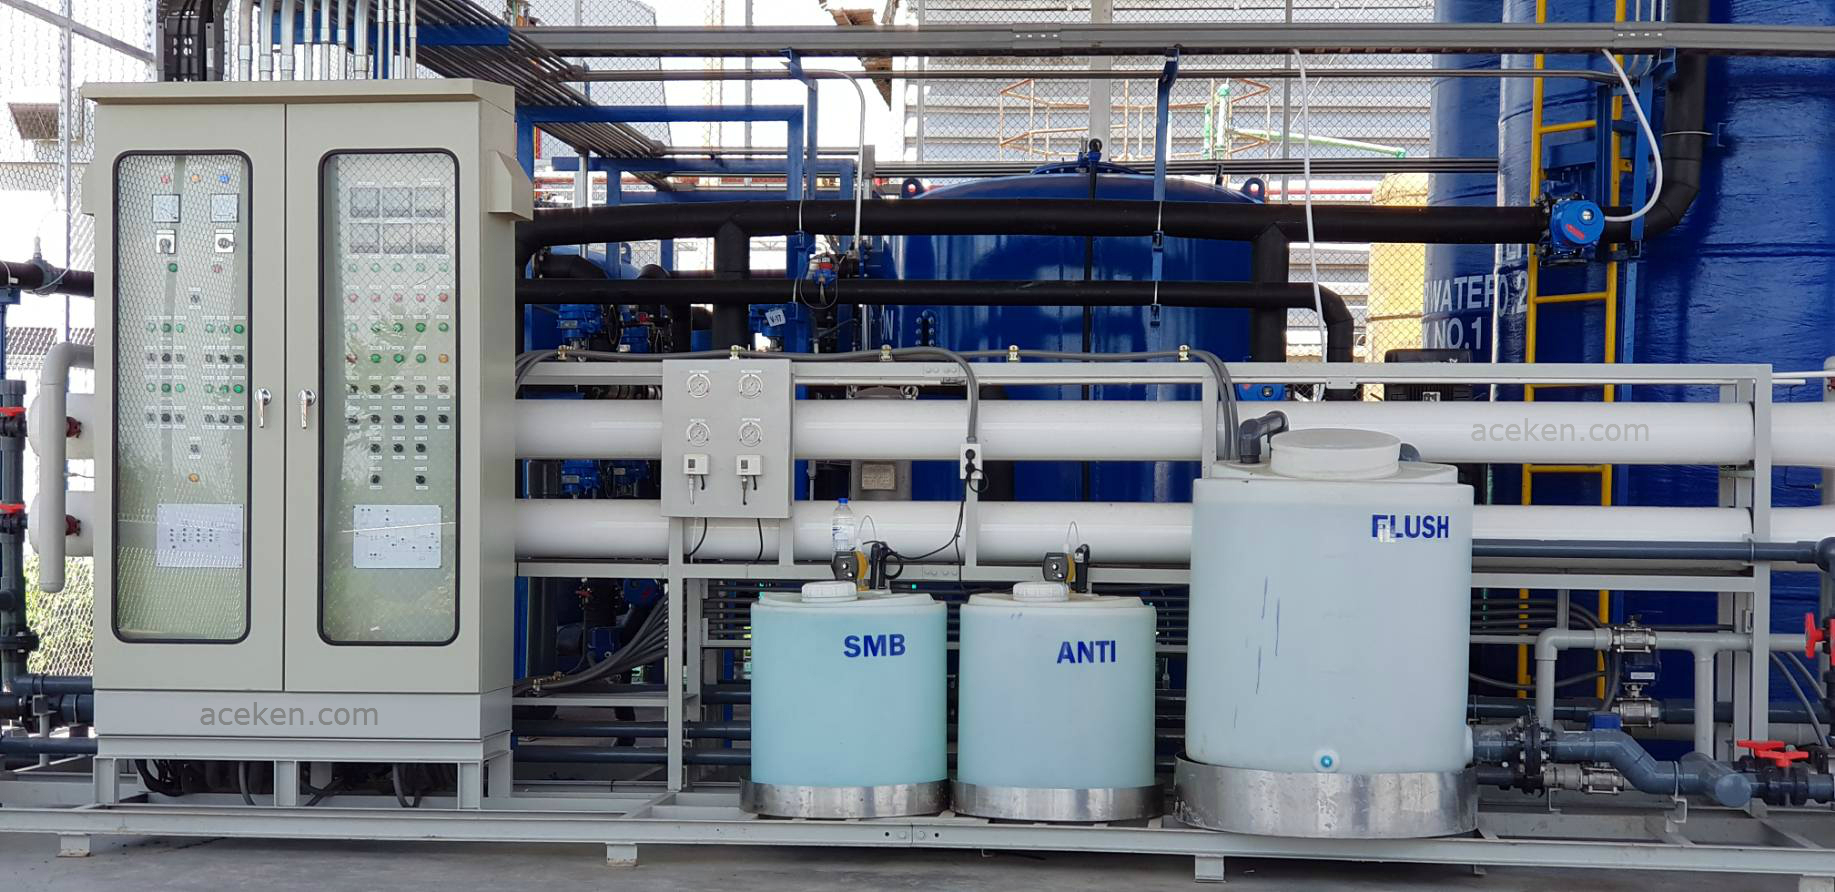 water_wastewater_treatment_recycle023